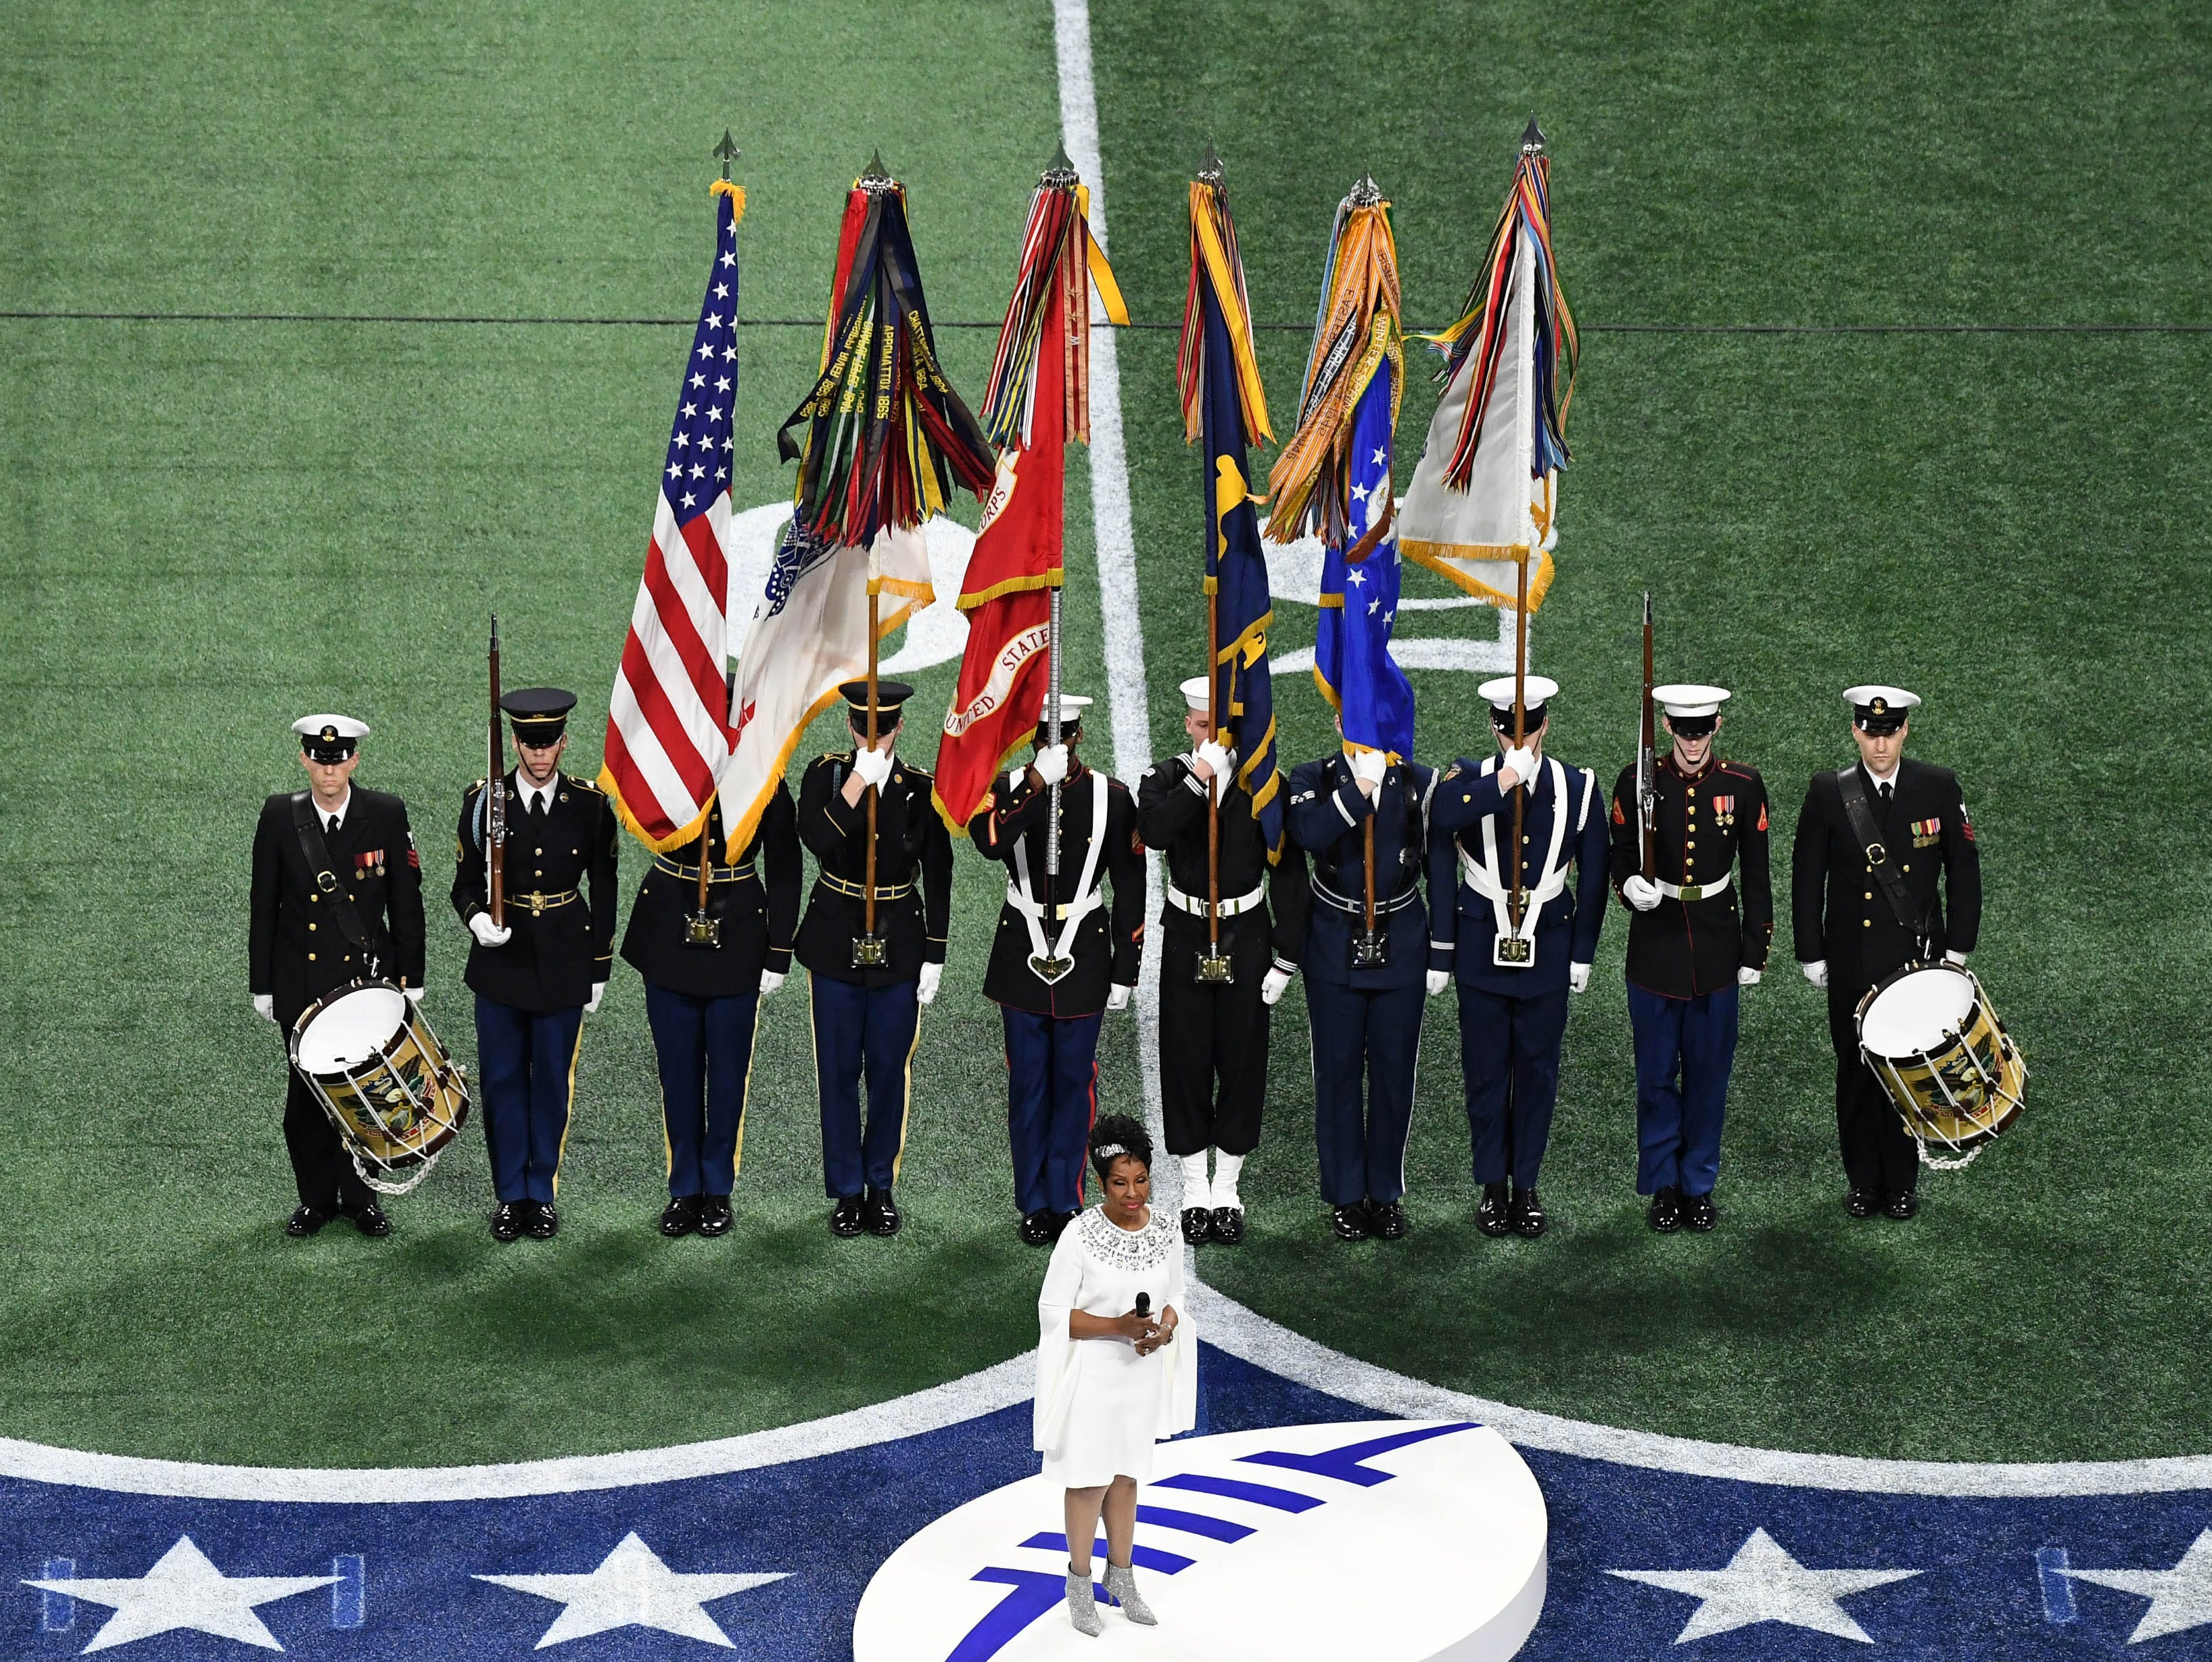 Singer Gladys Knight performs the National Anthem prior to Super Bowl LIII between the New England Patriots and the Los Angeles Rams at Mercedes-Benz Stadium.